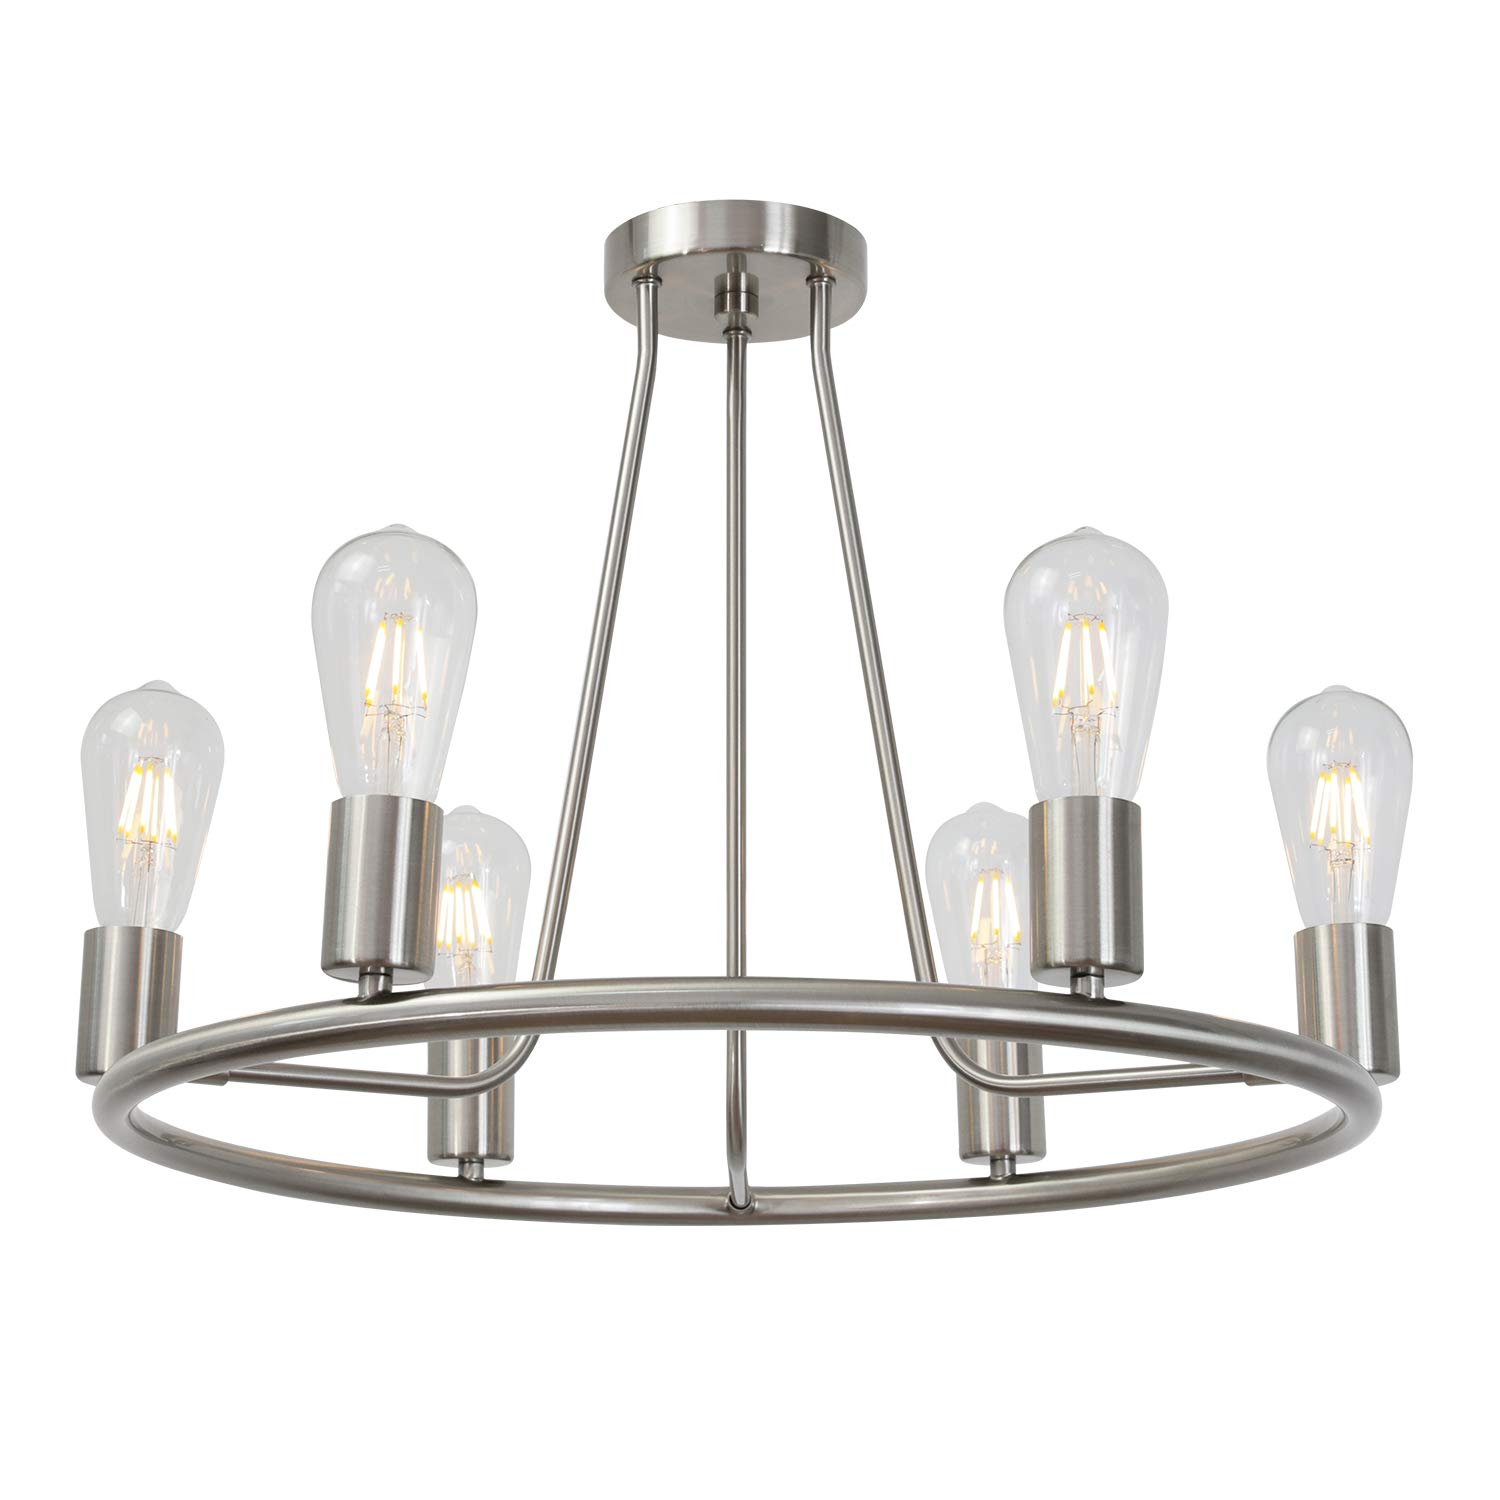 Bonlicht round farmhouse chandelier lighting 6 light modern indoor ceiling lighting brushed nickel mid century flush mount light fixtures ceiling kitchen